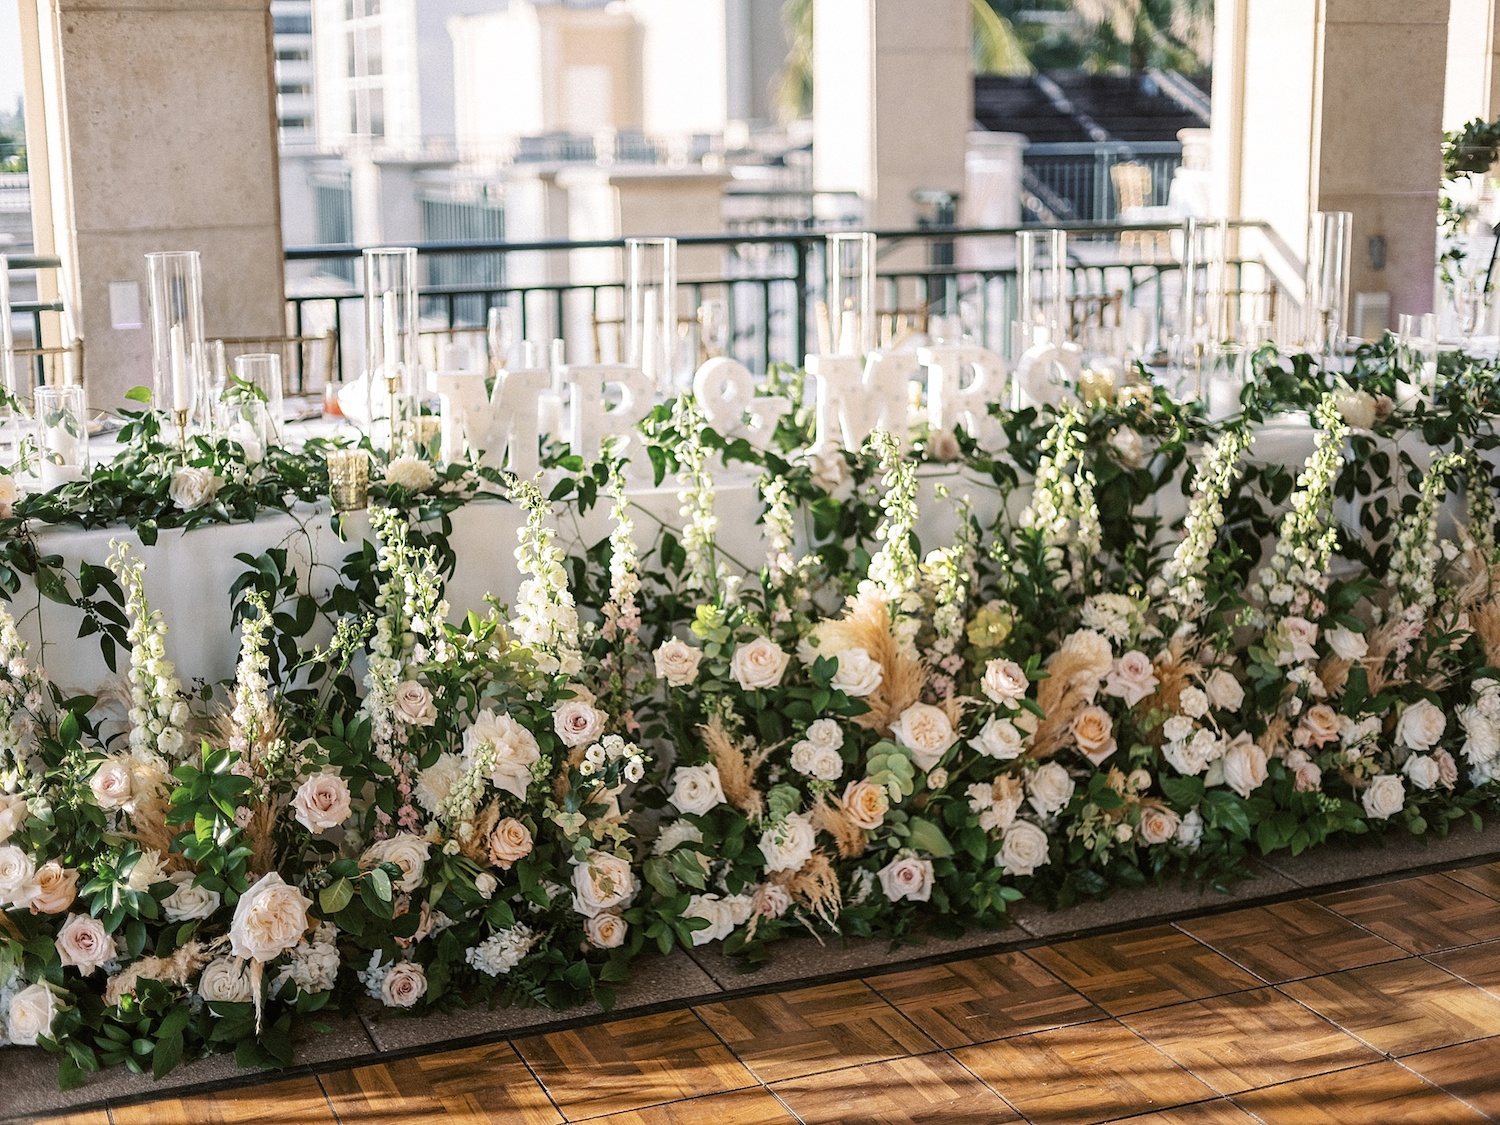 head table at a wedding covered in greenery and flowers